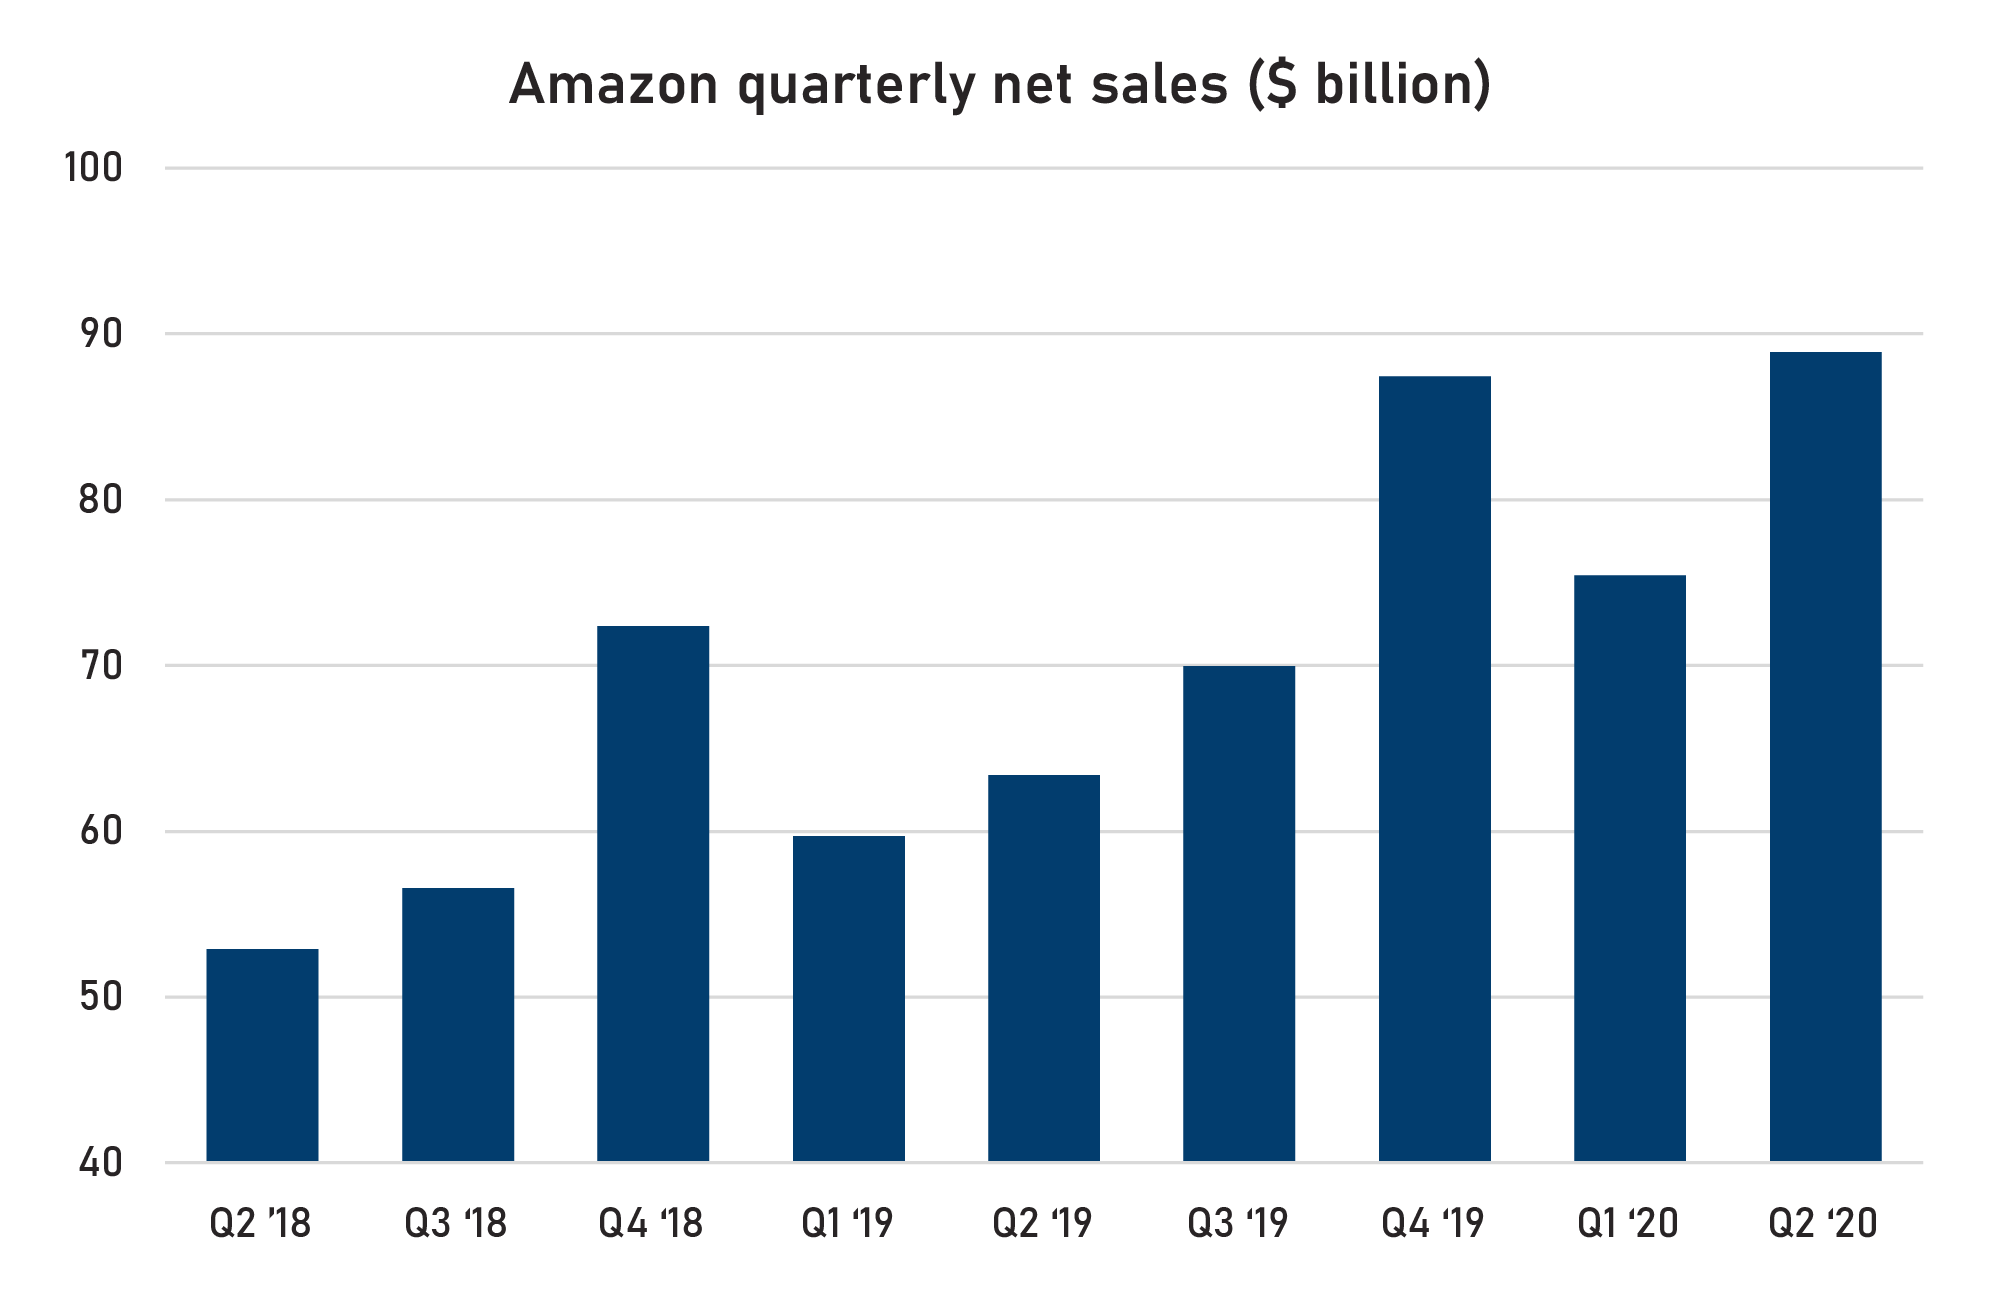 Amazon's quarterly net sales results from Q2 2018 to Q2 2020